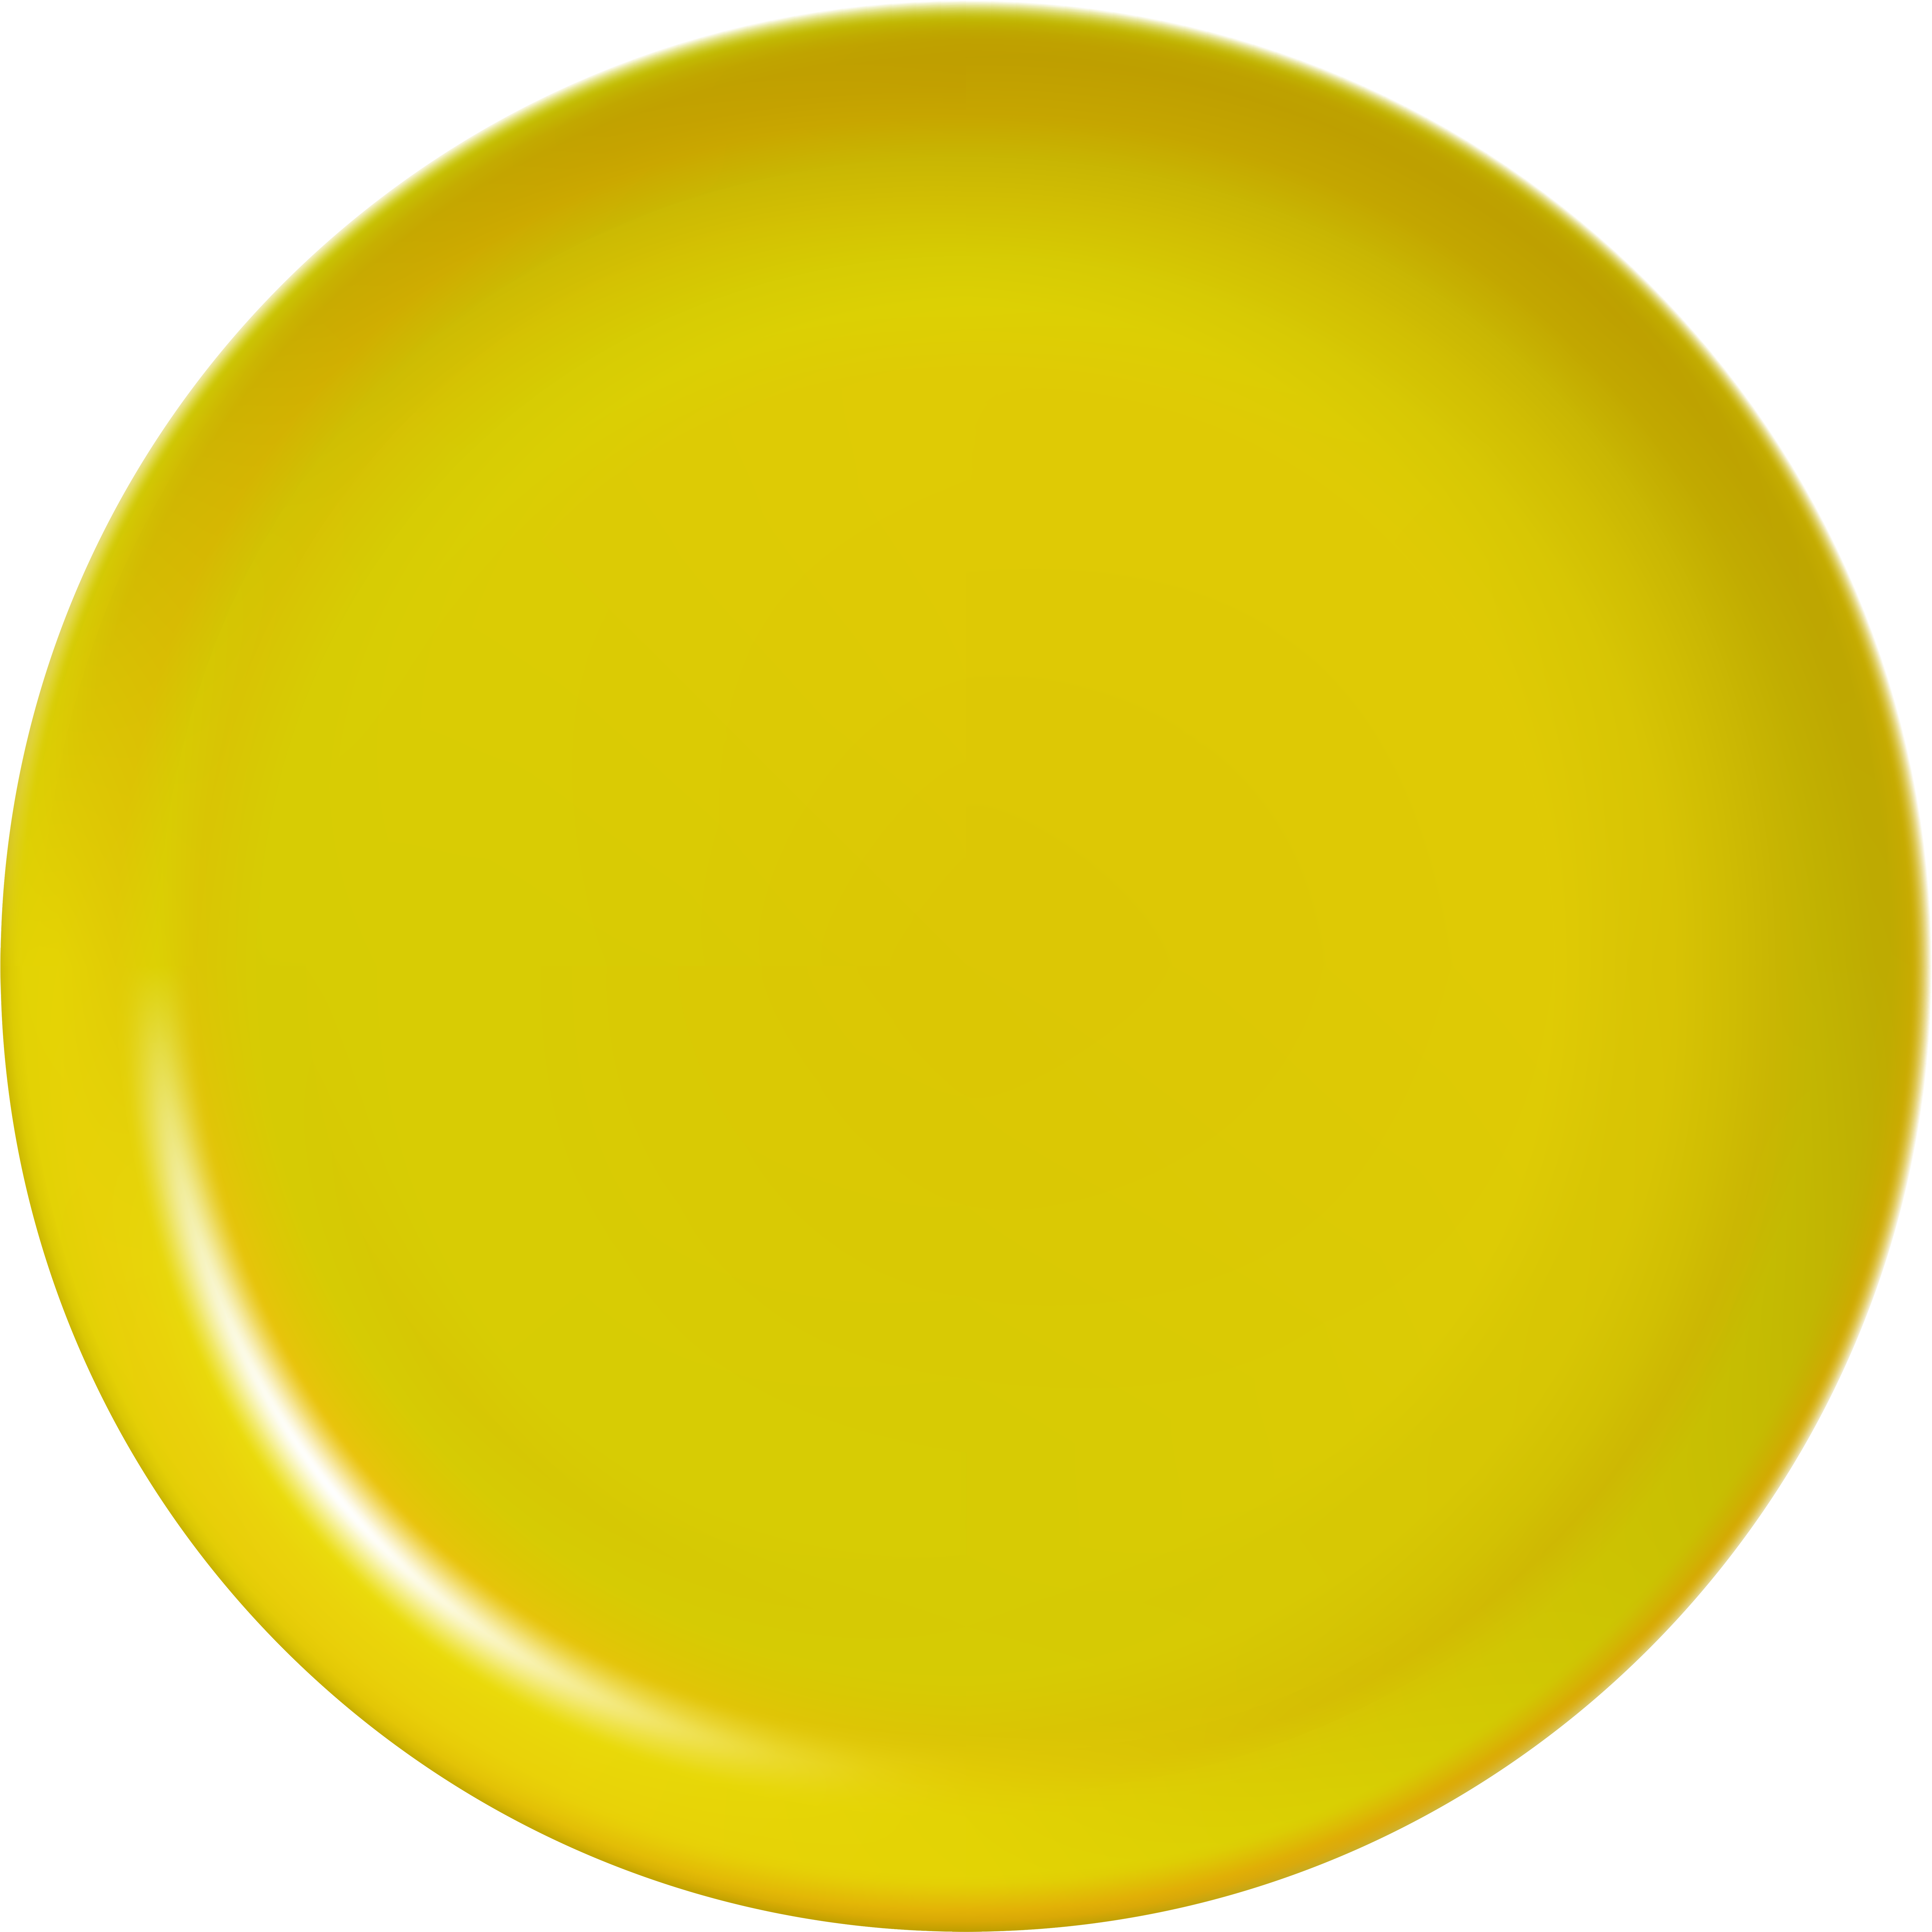 Free Yellow Png, Download Free Clip Art, Free Clip Art on.